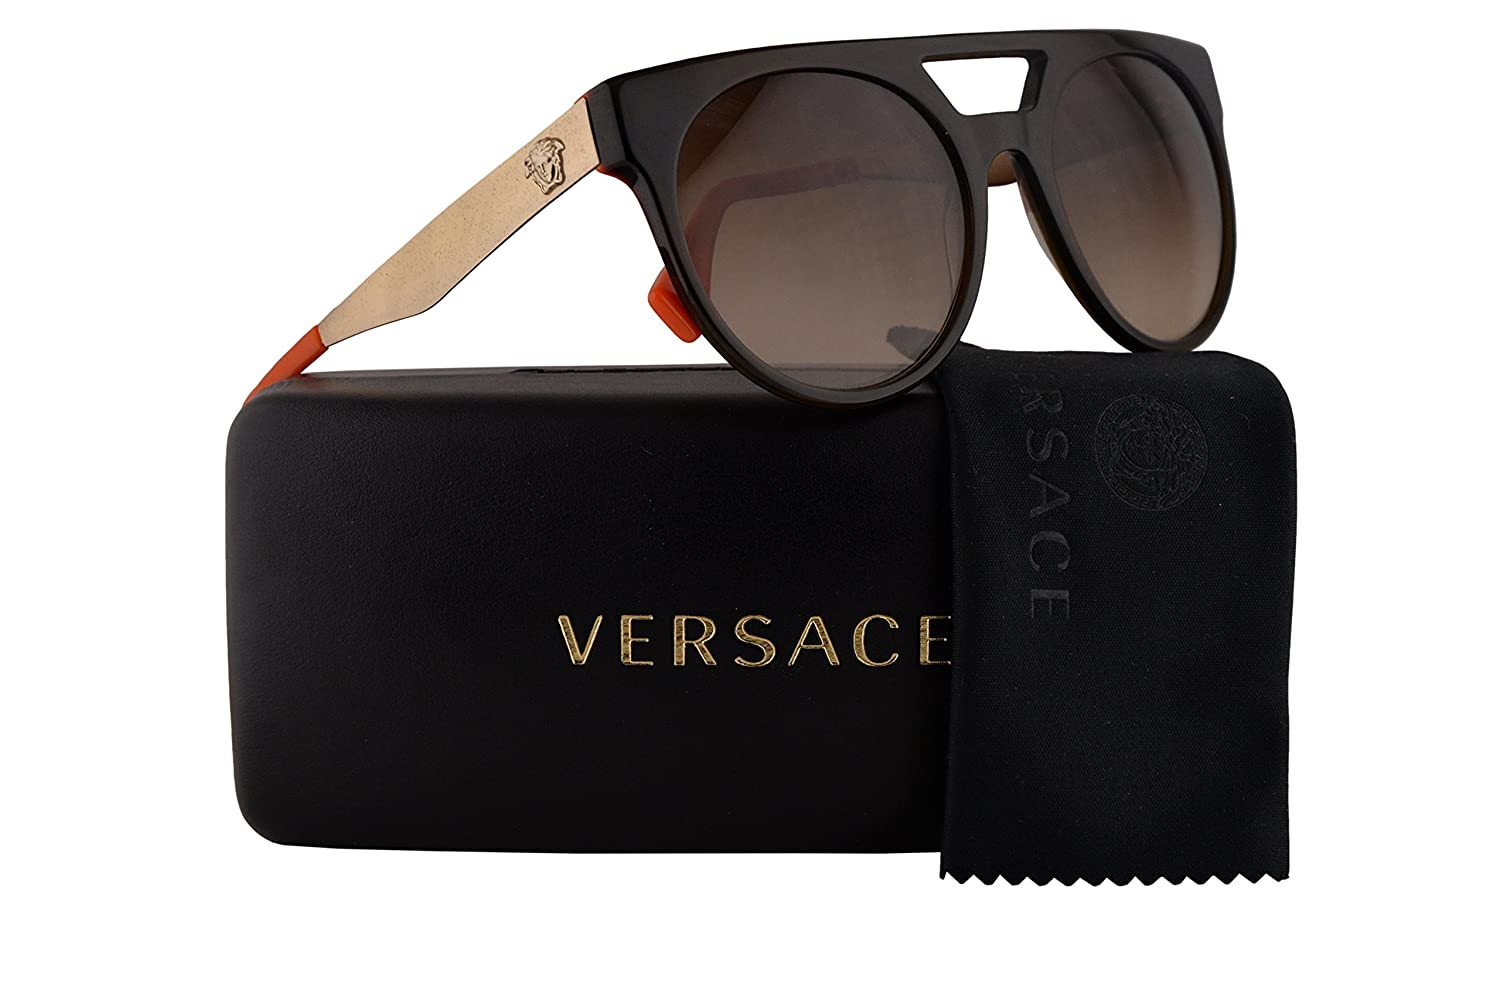 f19feaf0a40d Amazon.com  Versace VE4339 Sunglasses Green Crystal w Brown Gradient Lens 523513  VE 4339  Clothing